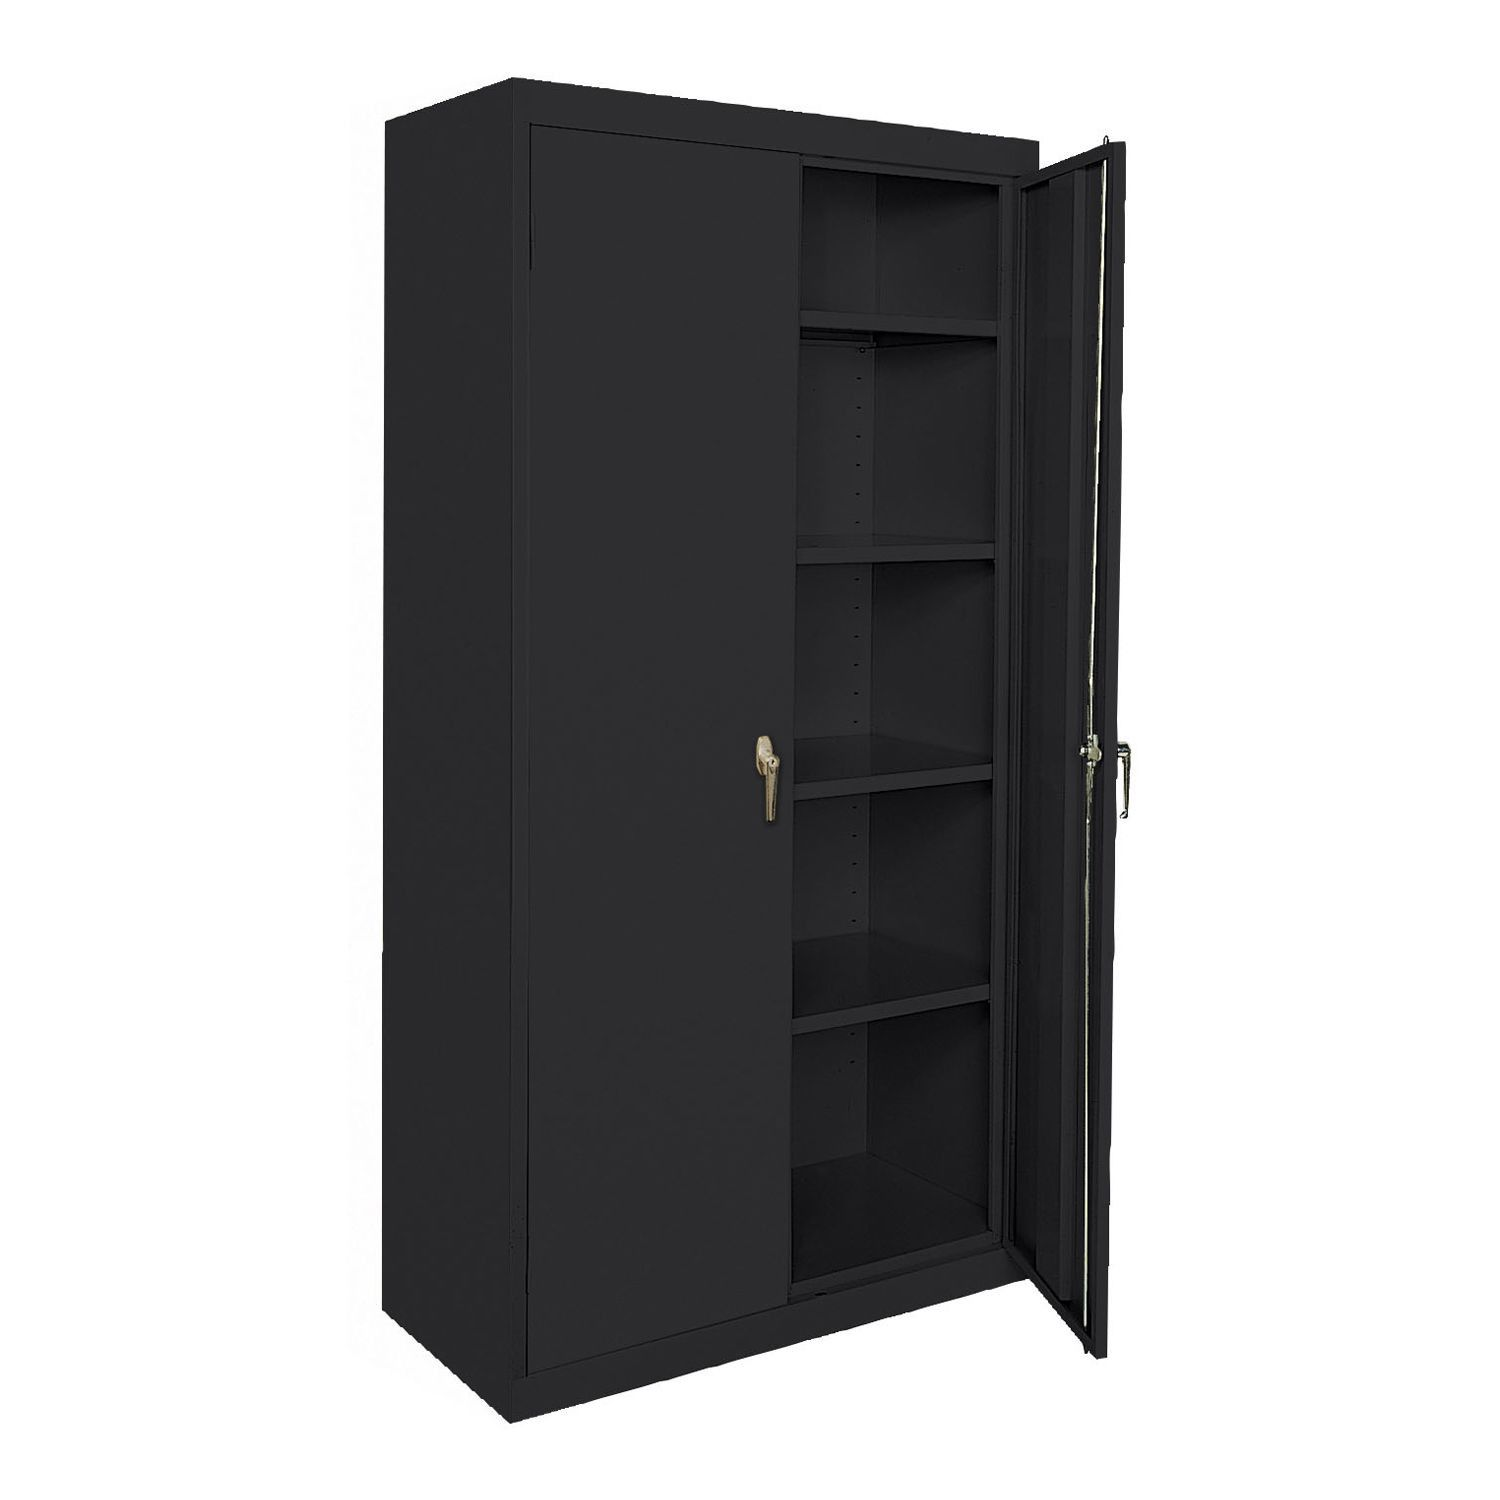 2018 Metal Storage Cabinet with Lock Corner Kitchen Cupboard Ideas